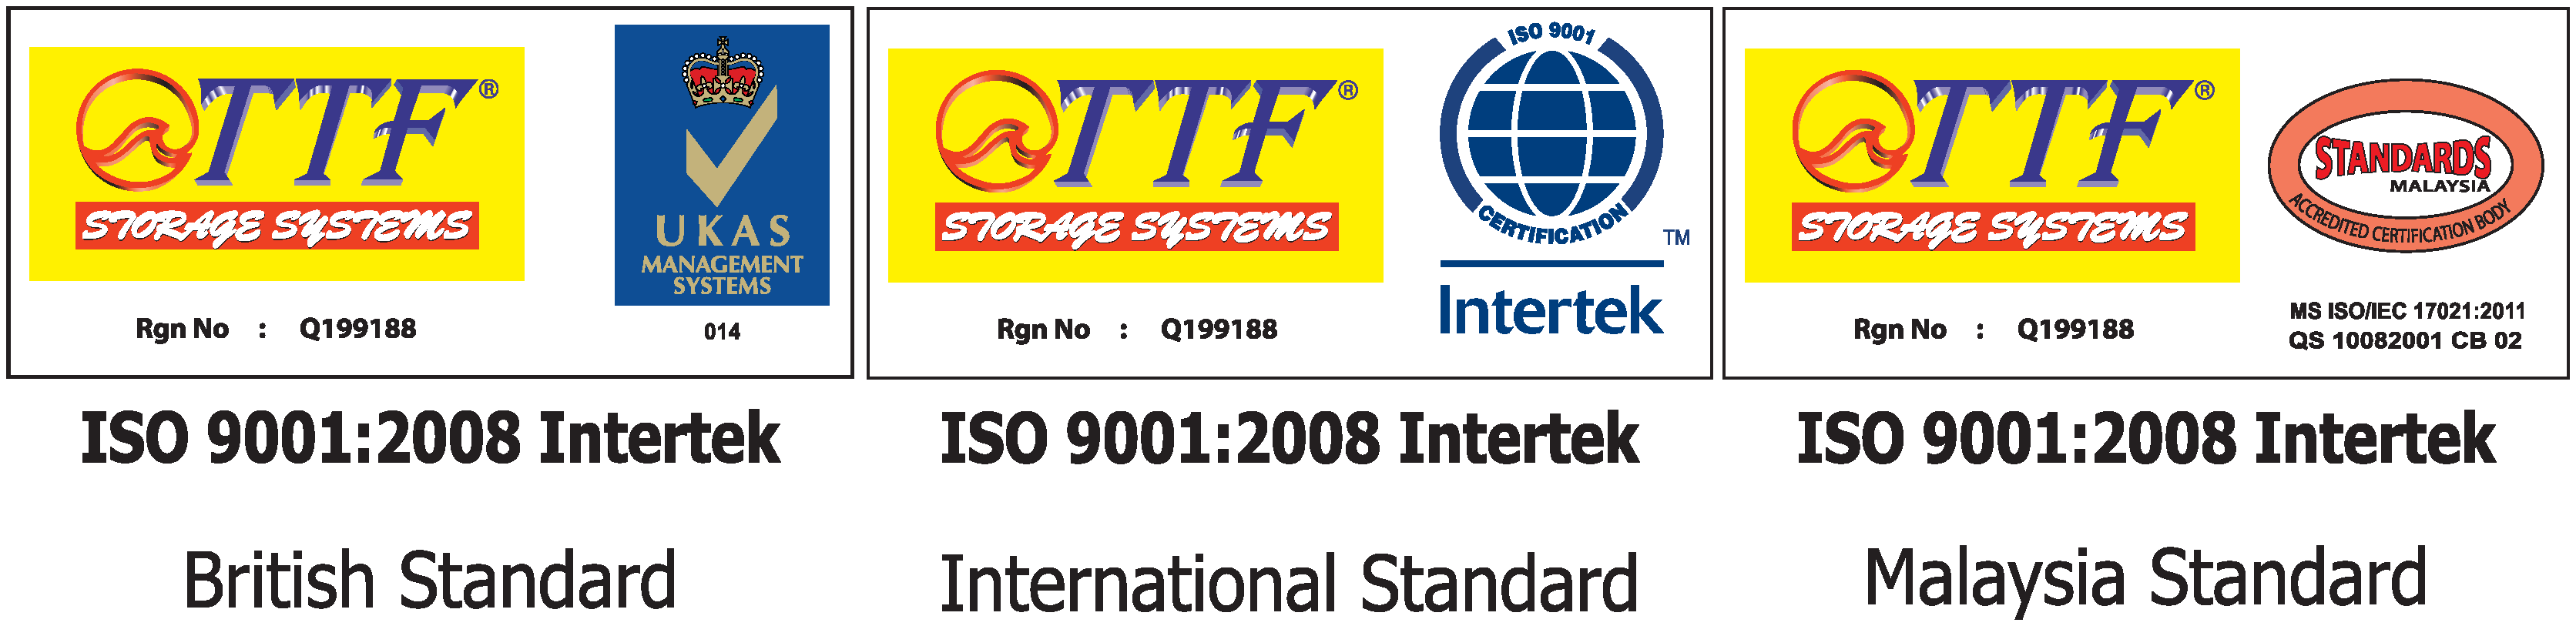 sirim management system Sirim qas international sdn bhd is malaysia's iso 9001 quality management system from another accredited certification body to sirim qas.